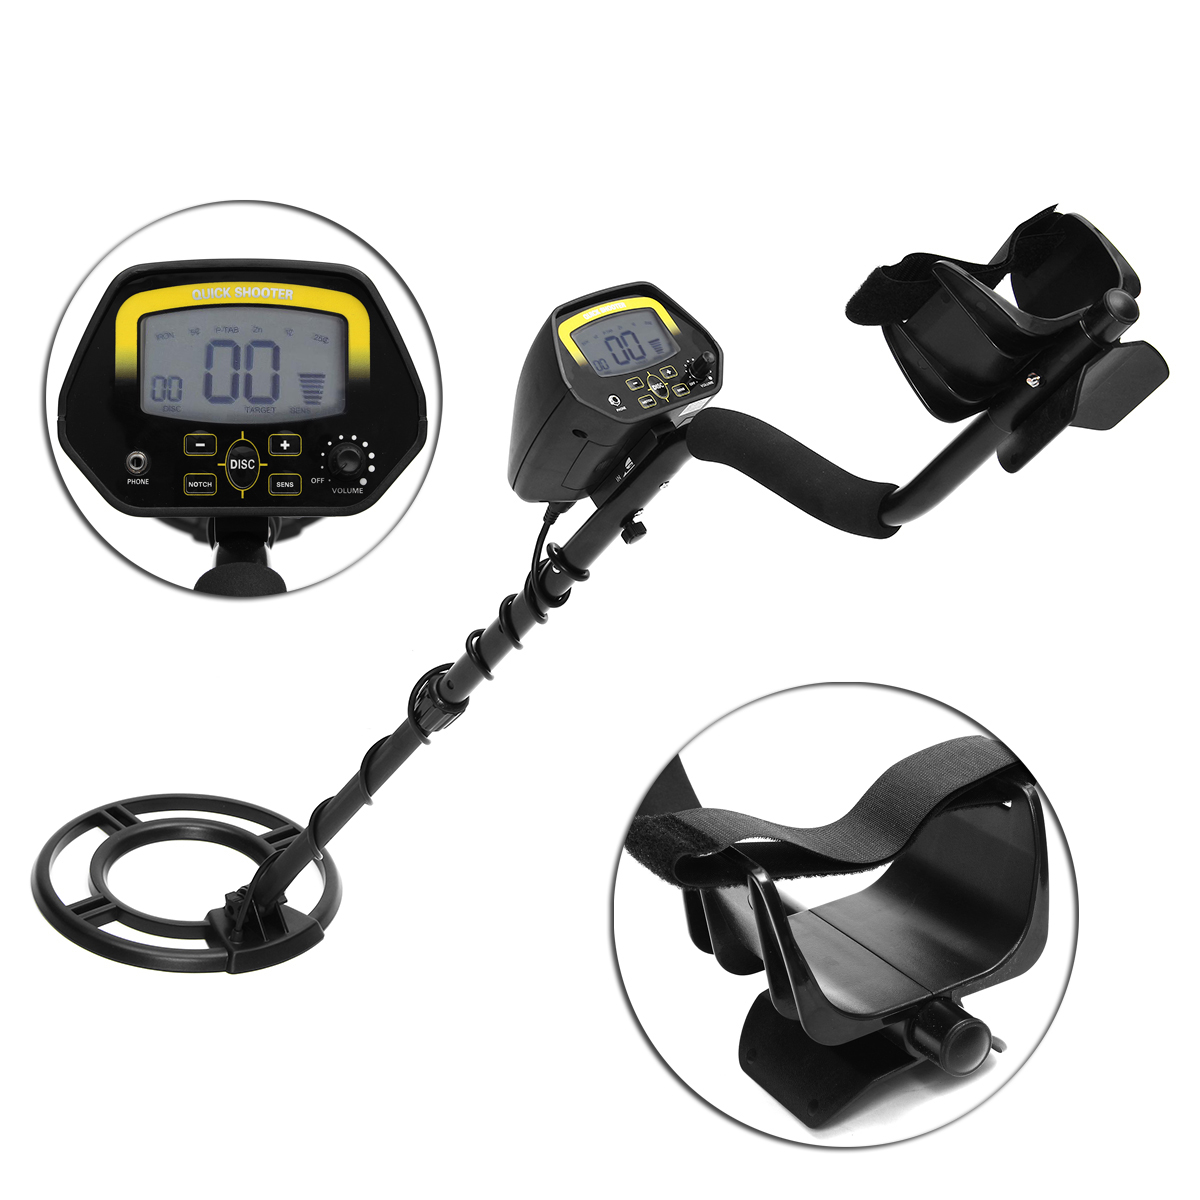 GC1032 LCD Display Waterproof Metal Detector Gold Coin